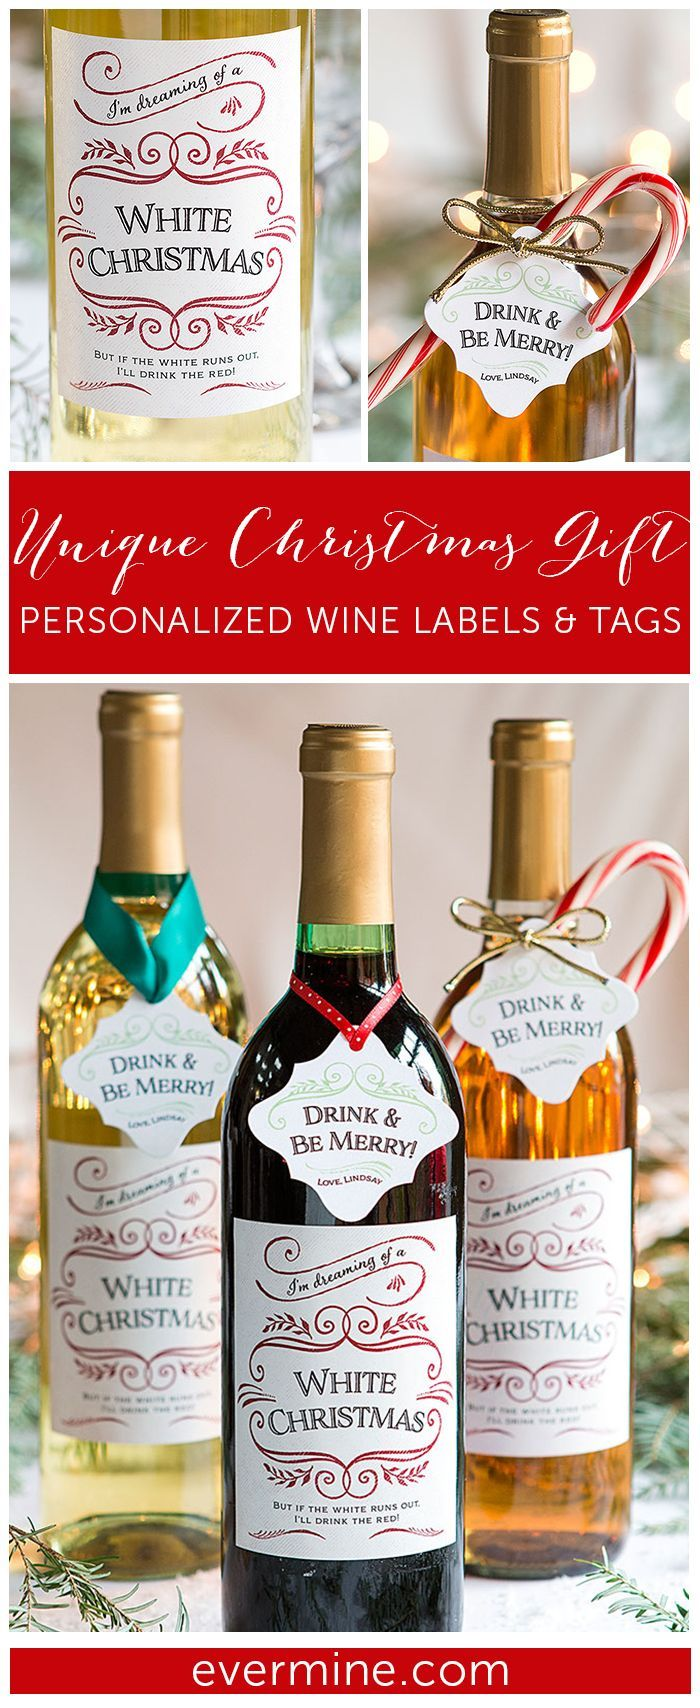 14 Of The Best Living Room Interior Design Trends For 2019 Diy Christmas Gifts Wine Wine Christmas Gifts Holiday Wine Label